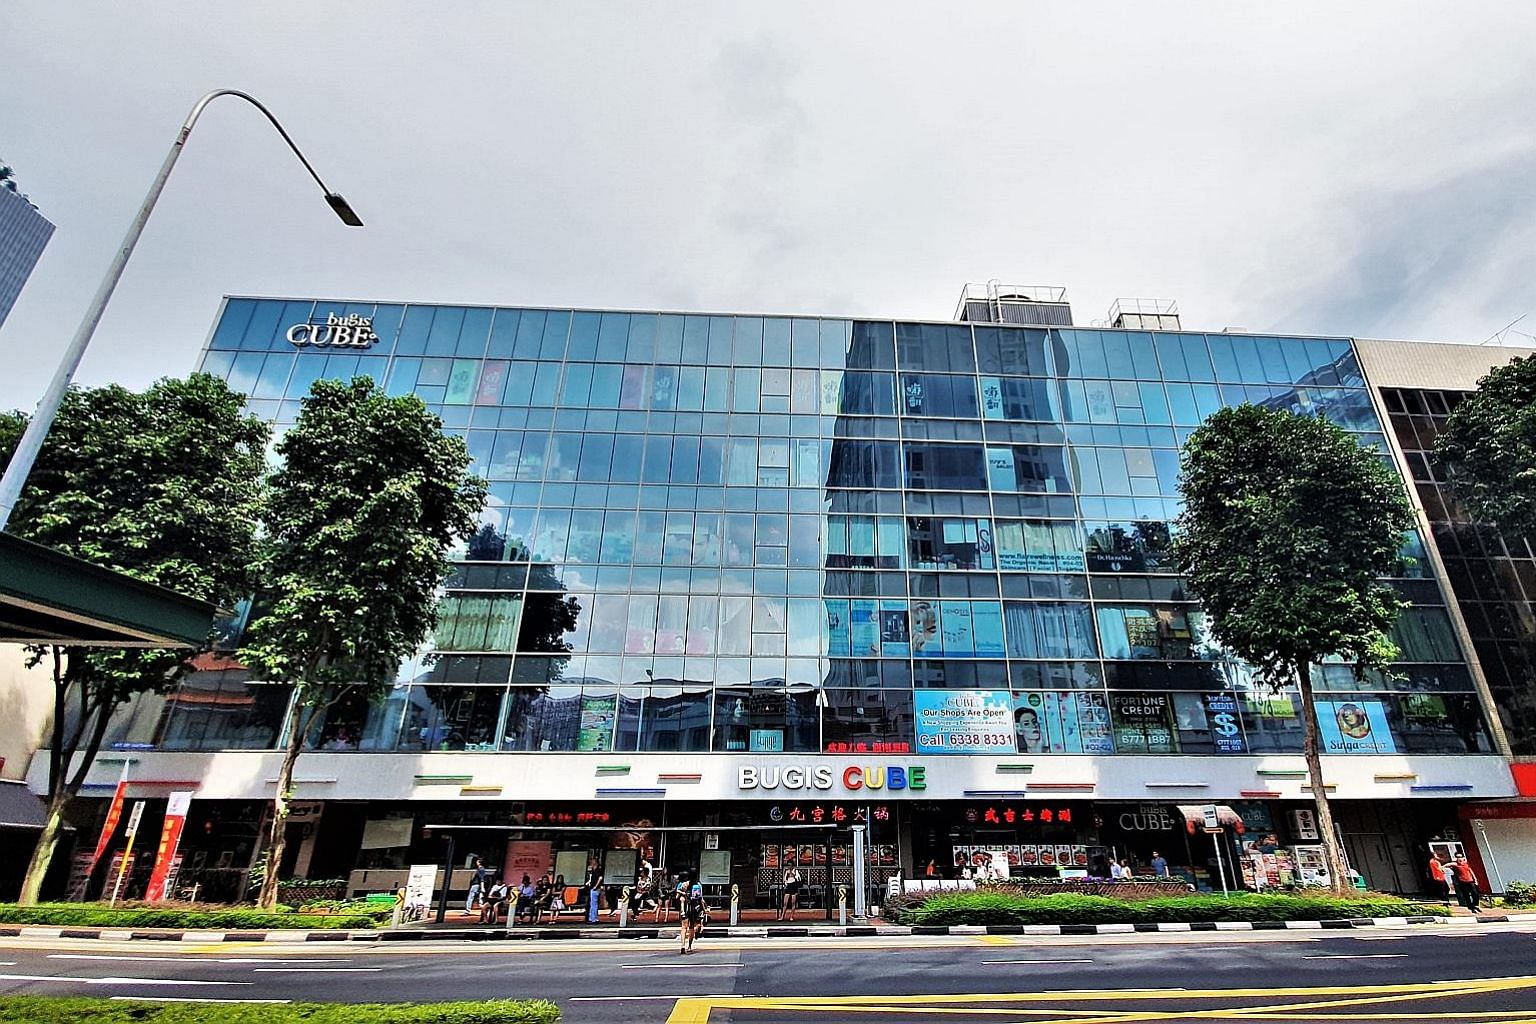 Bugis Cube, which sits opposite Bugis Junction, has 119 strata-titled retail shops, including F&B outlets and a karaoke lounge. It is about 250m from City Hall MRT and Bugis MRT stations, and has easy access from other parts of Singapore via the East